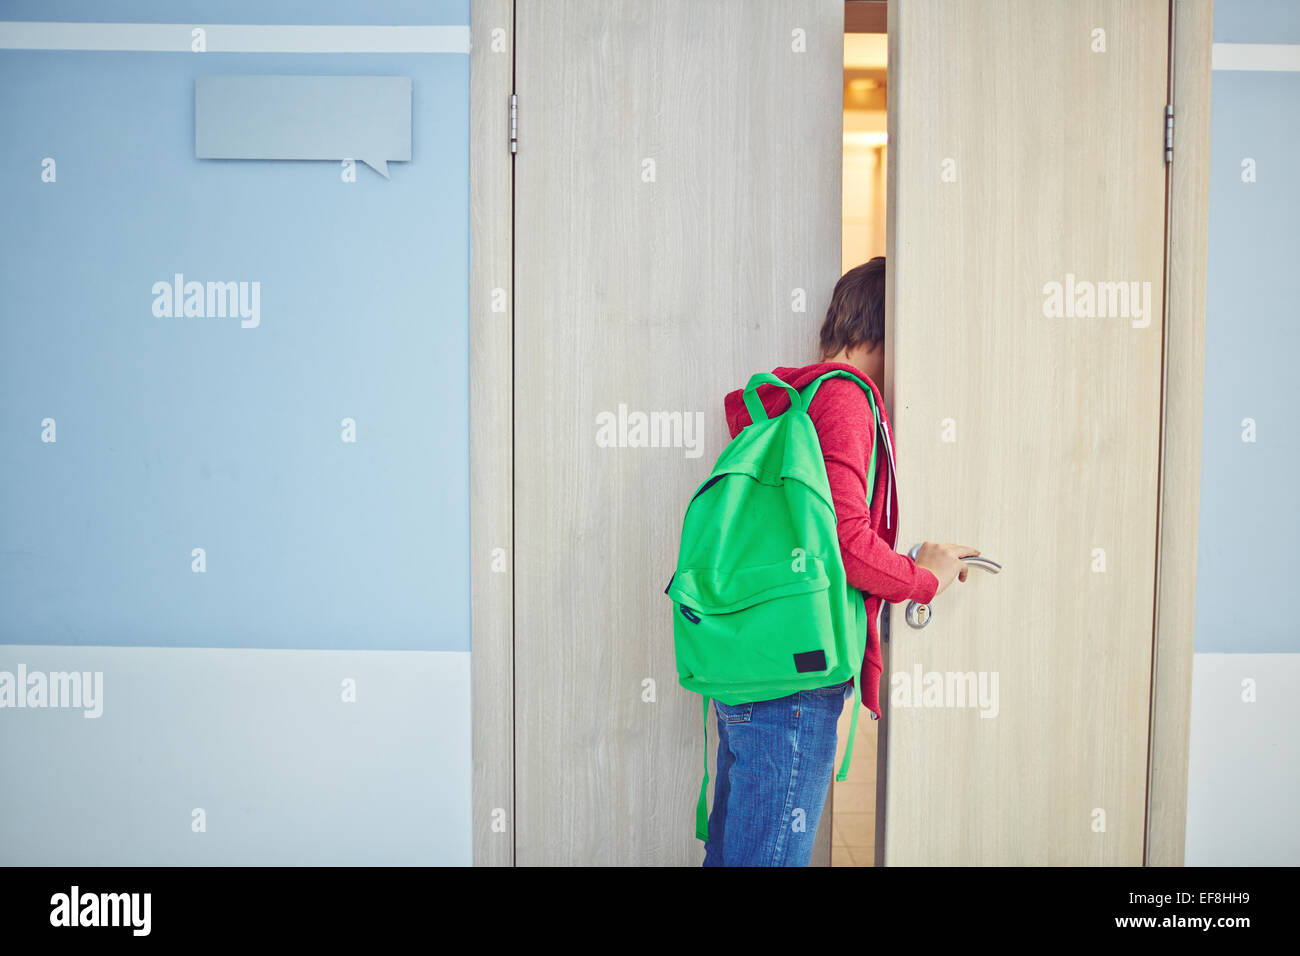 Pre-teen schoolboy late for lesson looking into classroom - Stock Image